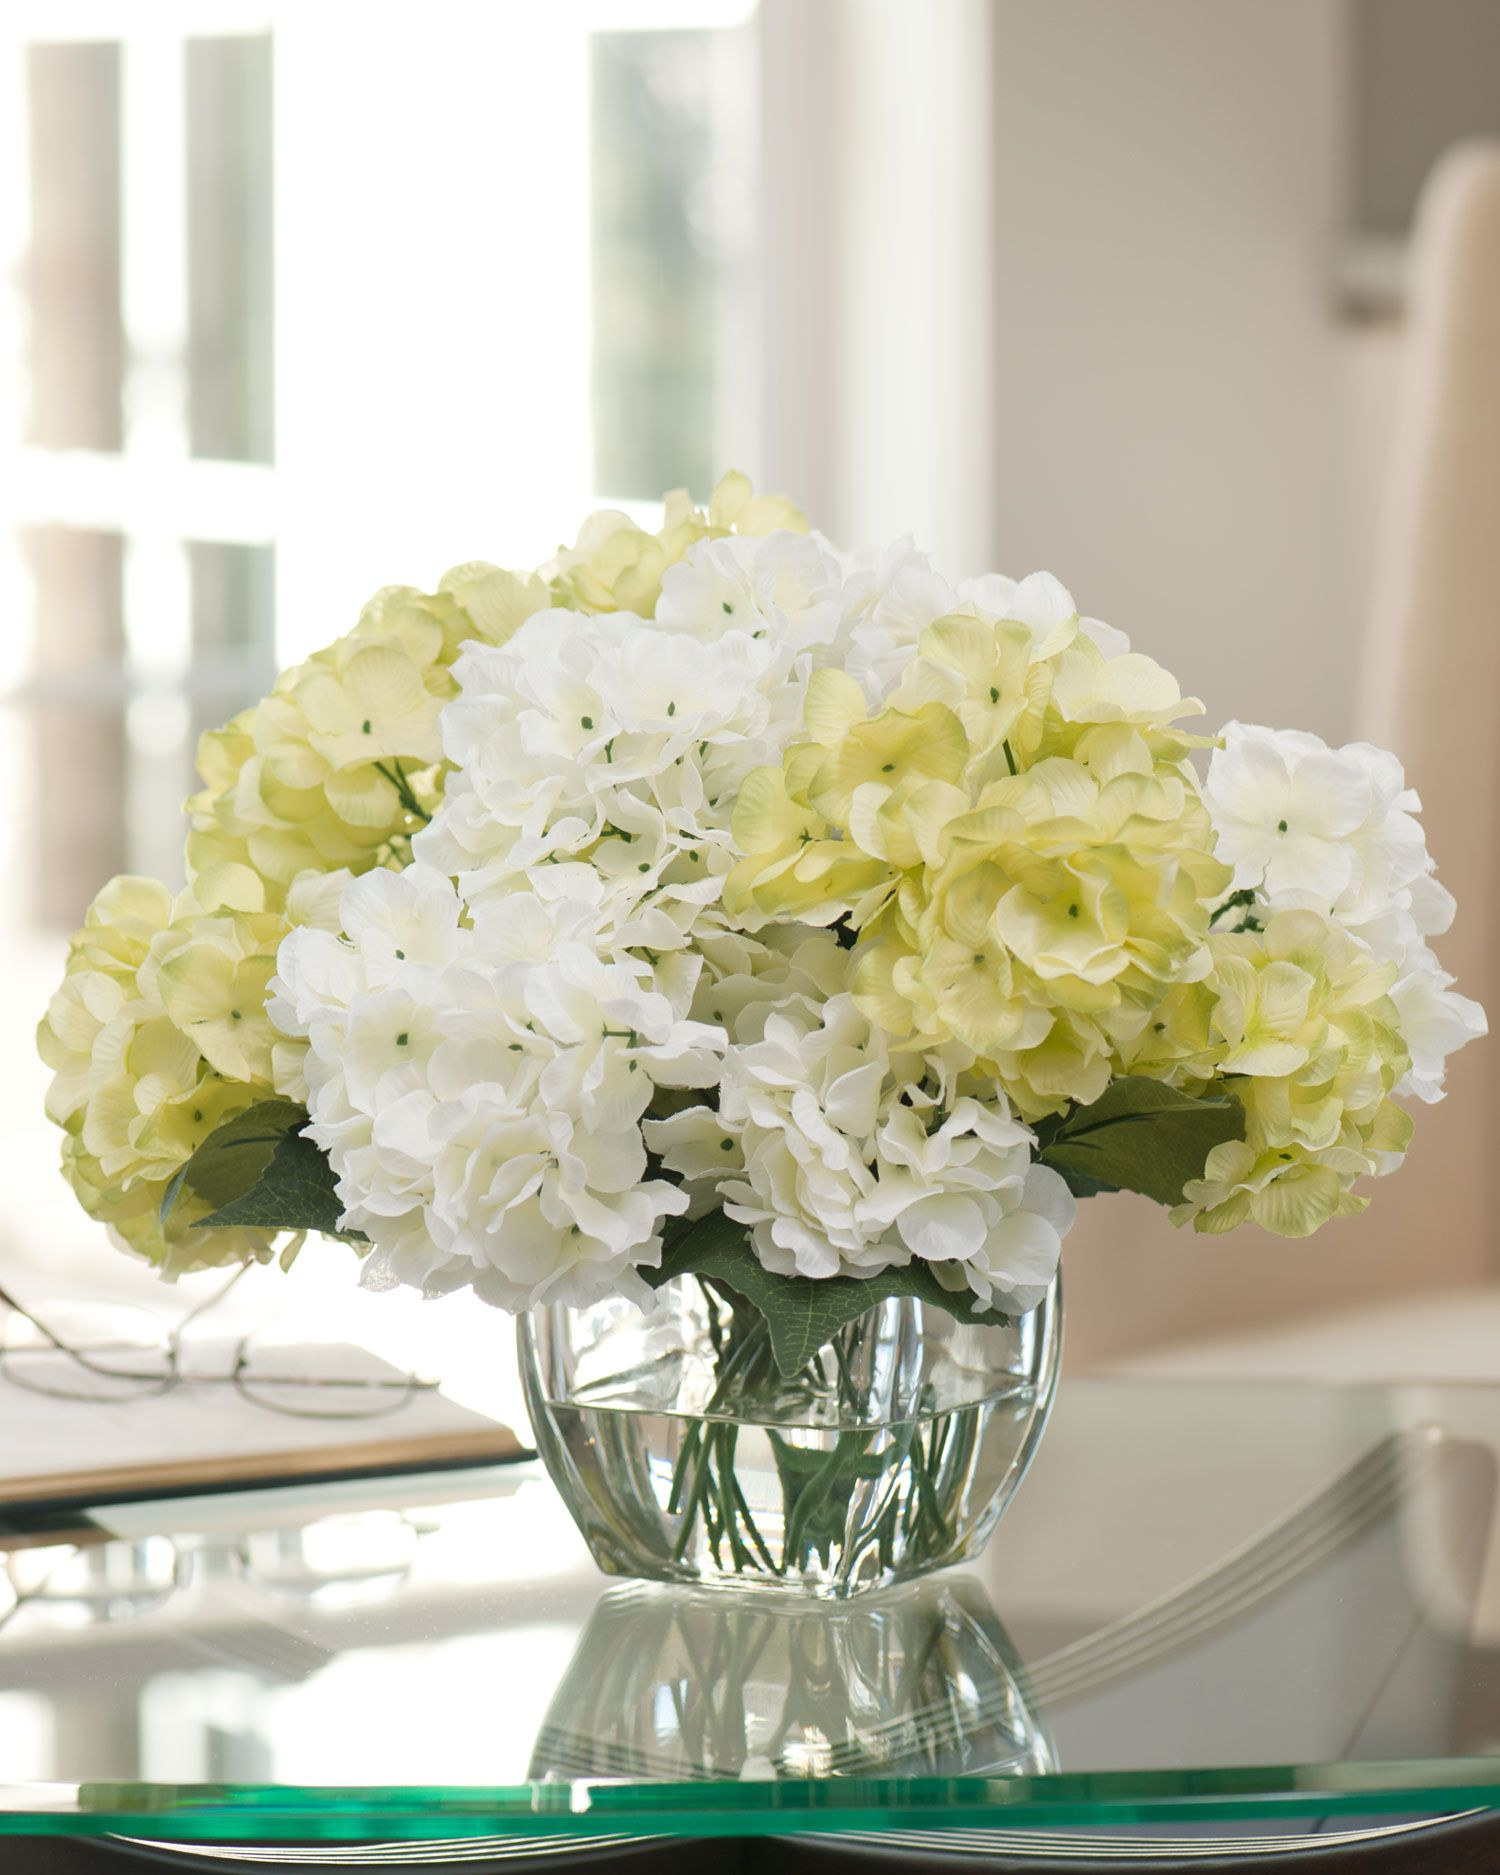 Wedding White Hydrangea: Silk Hydrangea Centerpiece